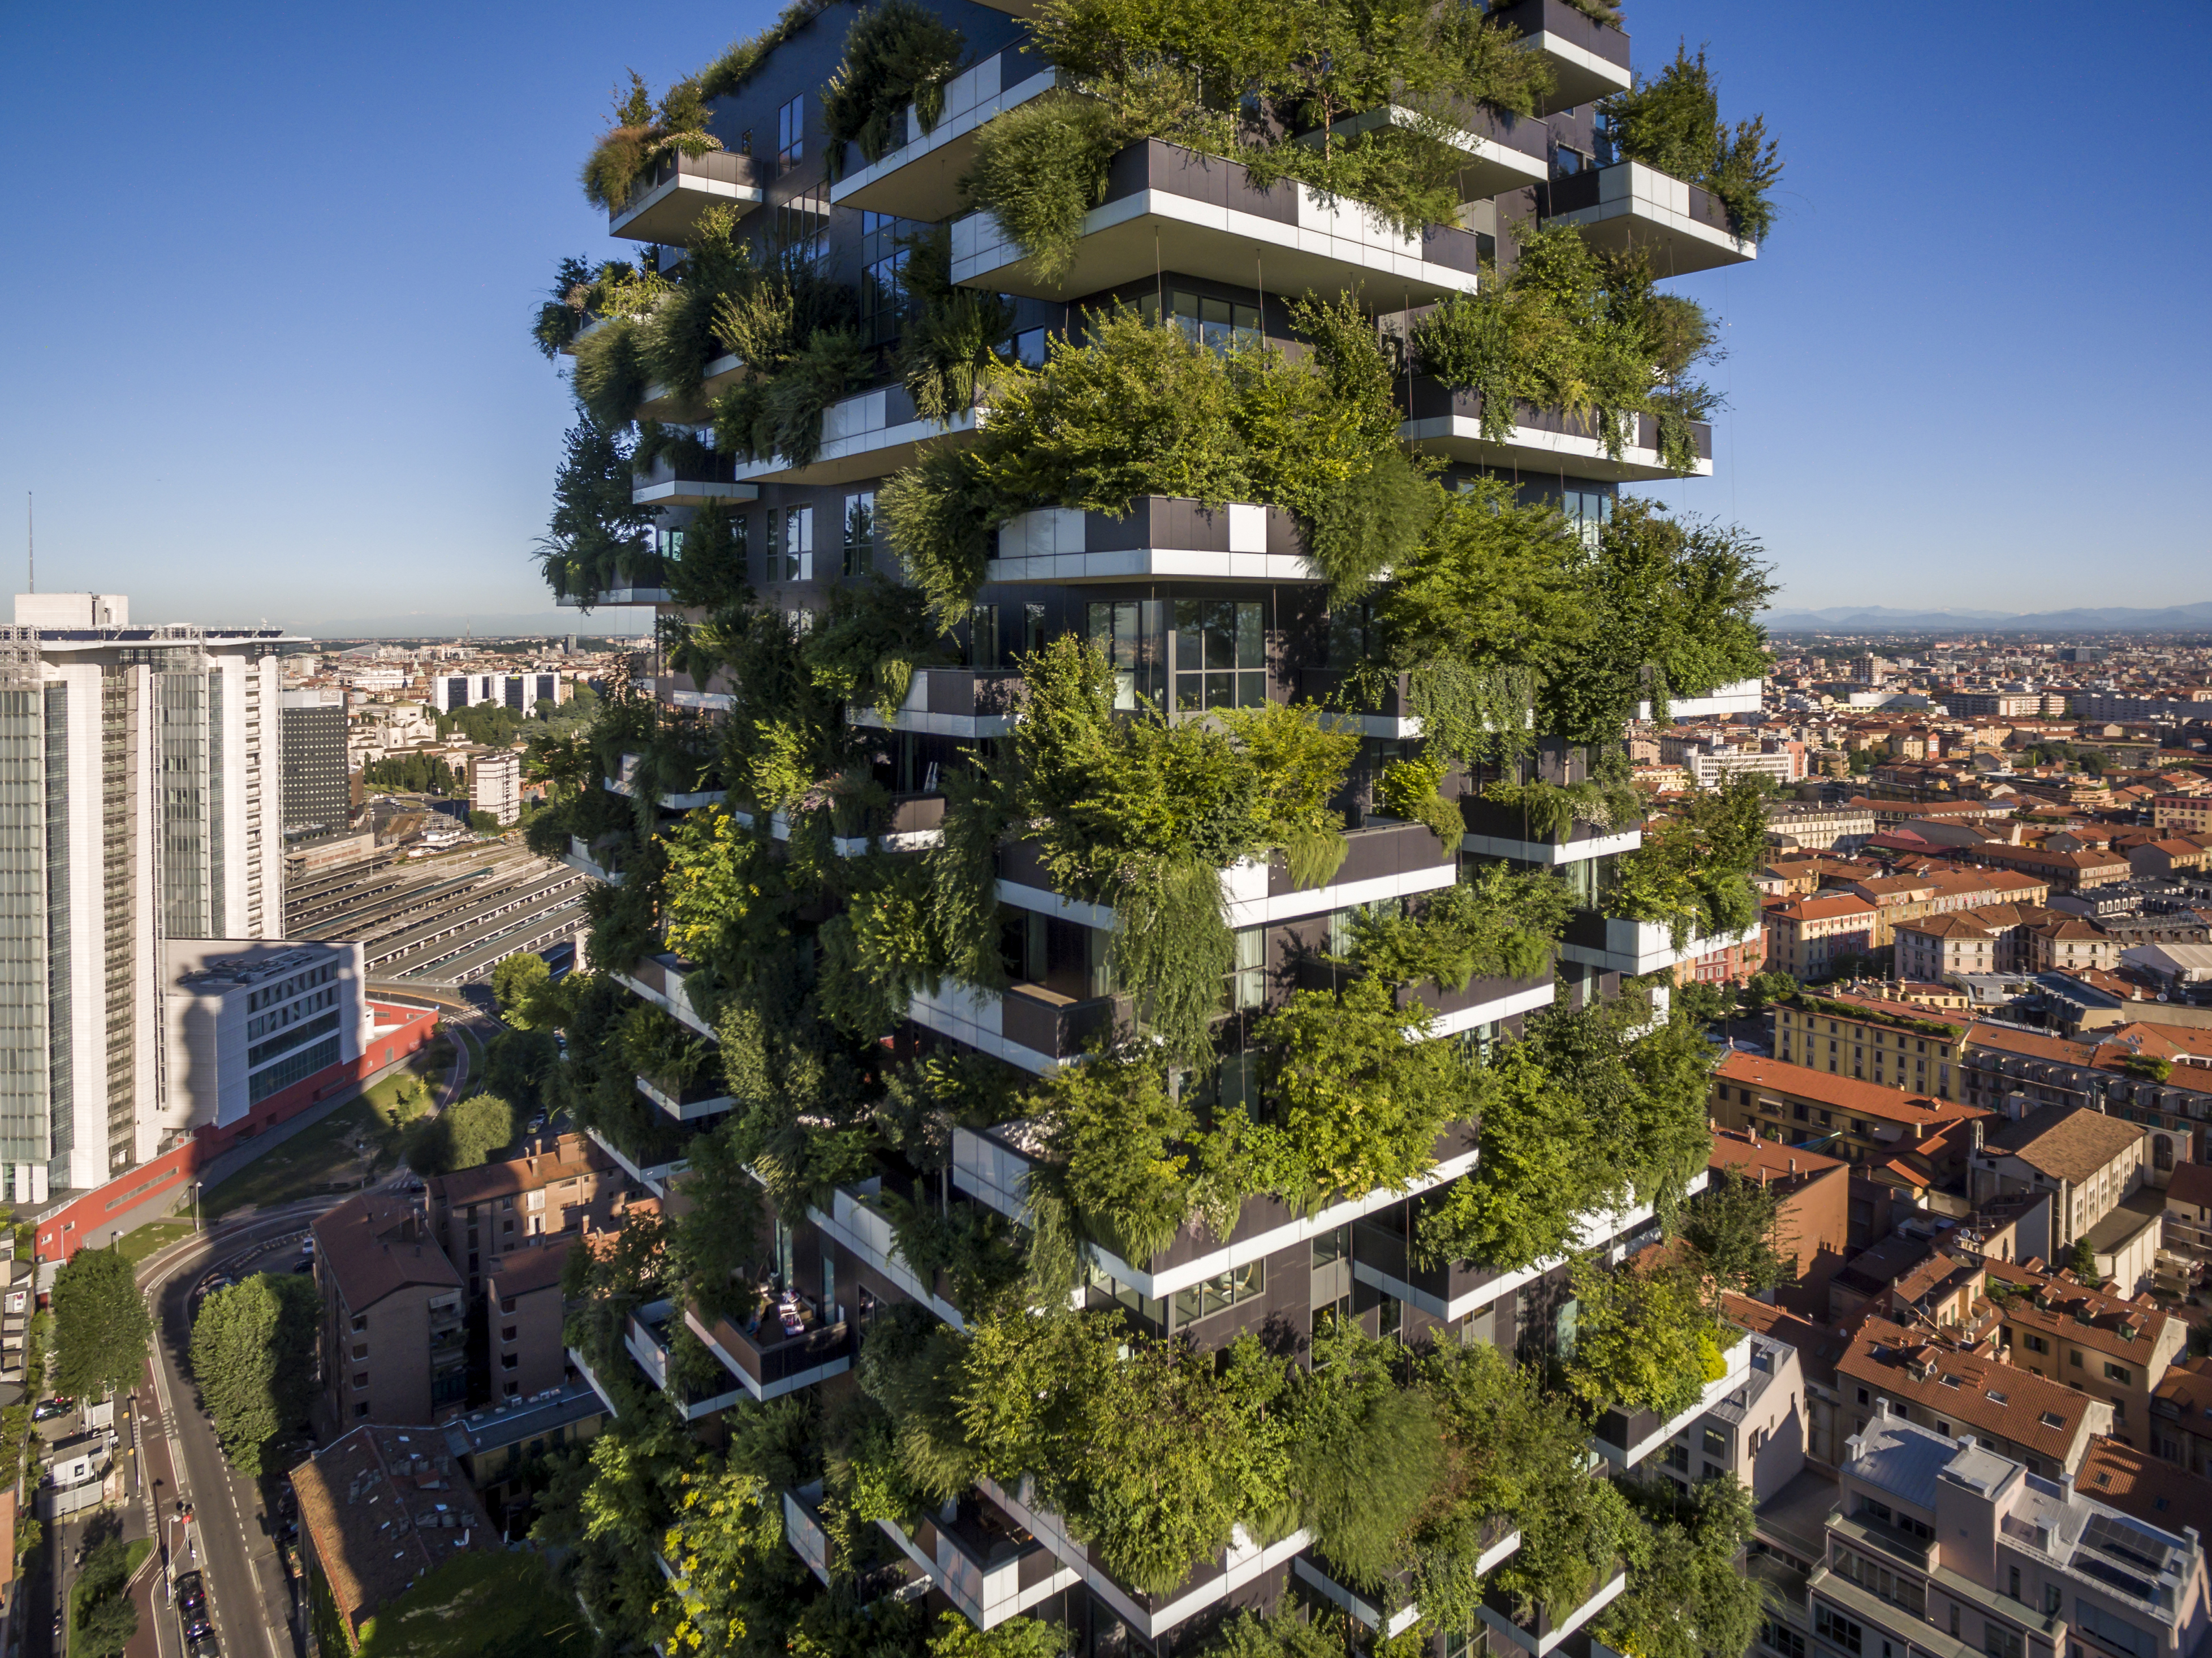 Vertical forests may help solve climate change and housing shortages